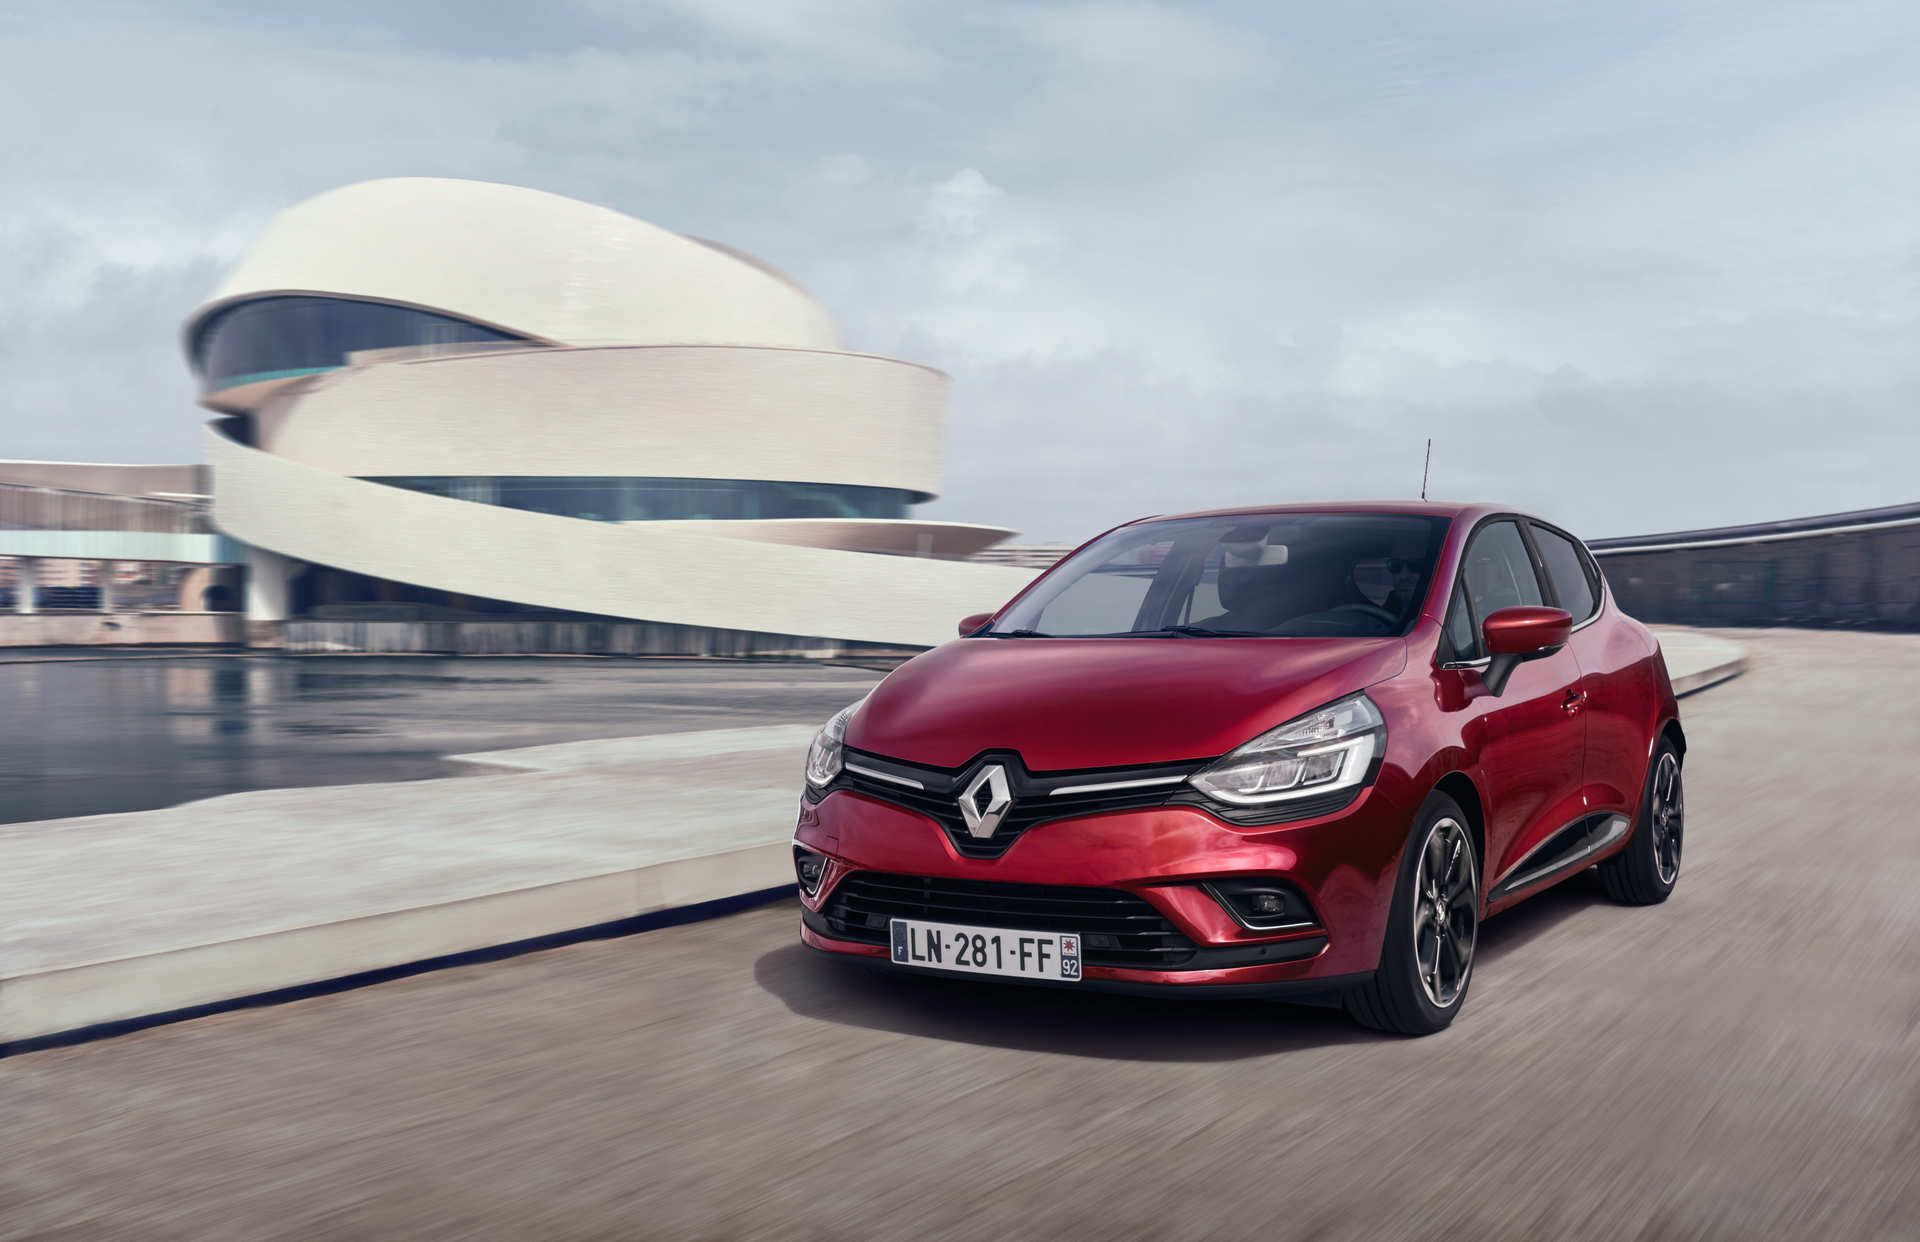 renault-clio-generation-kulso-design